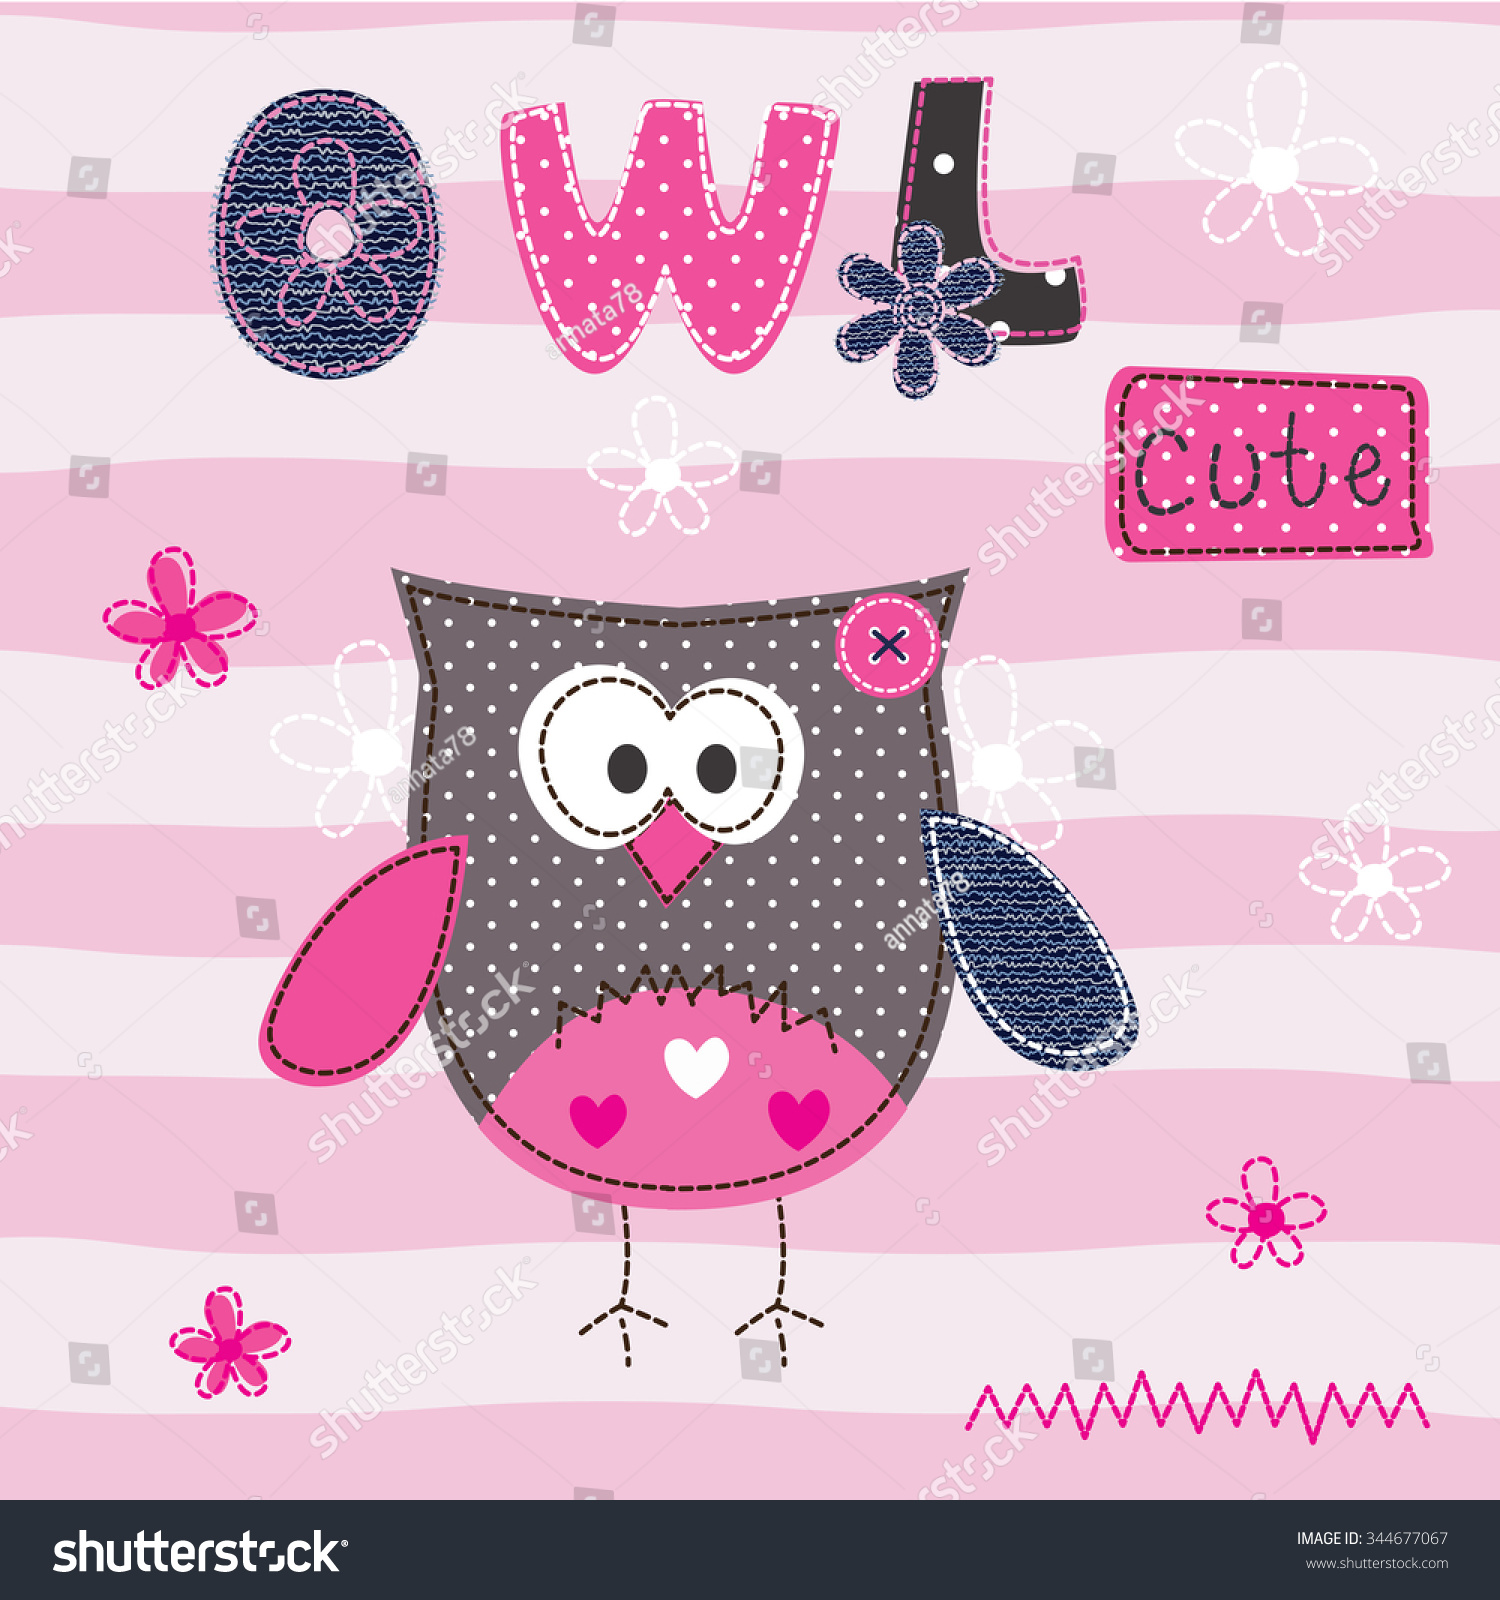 Shirt design card - Baby Background With Cute Owl For T Shirt Design Baby Shower Greeting Card